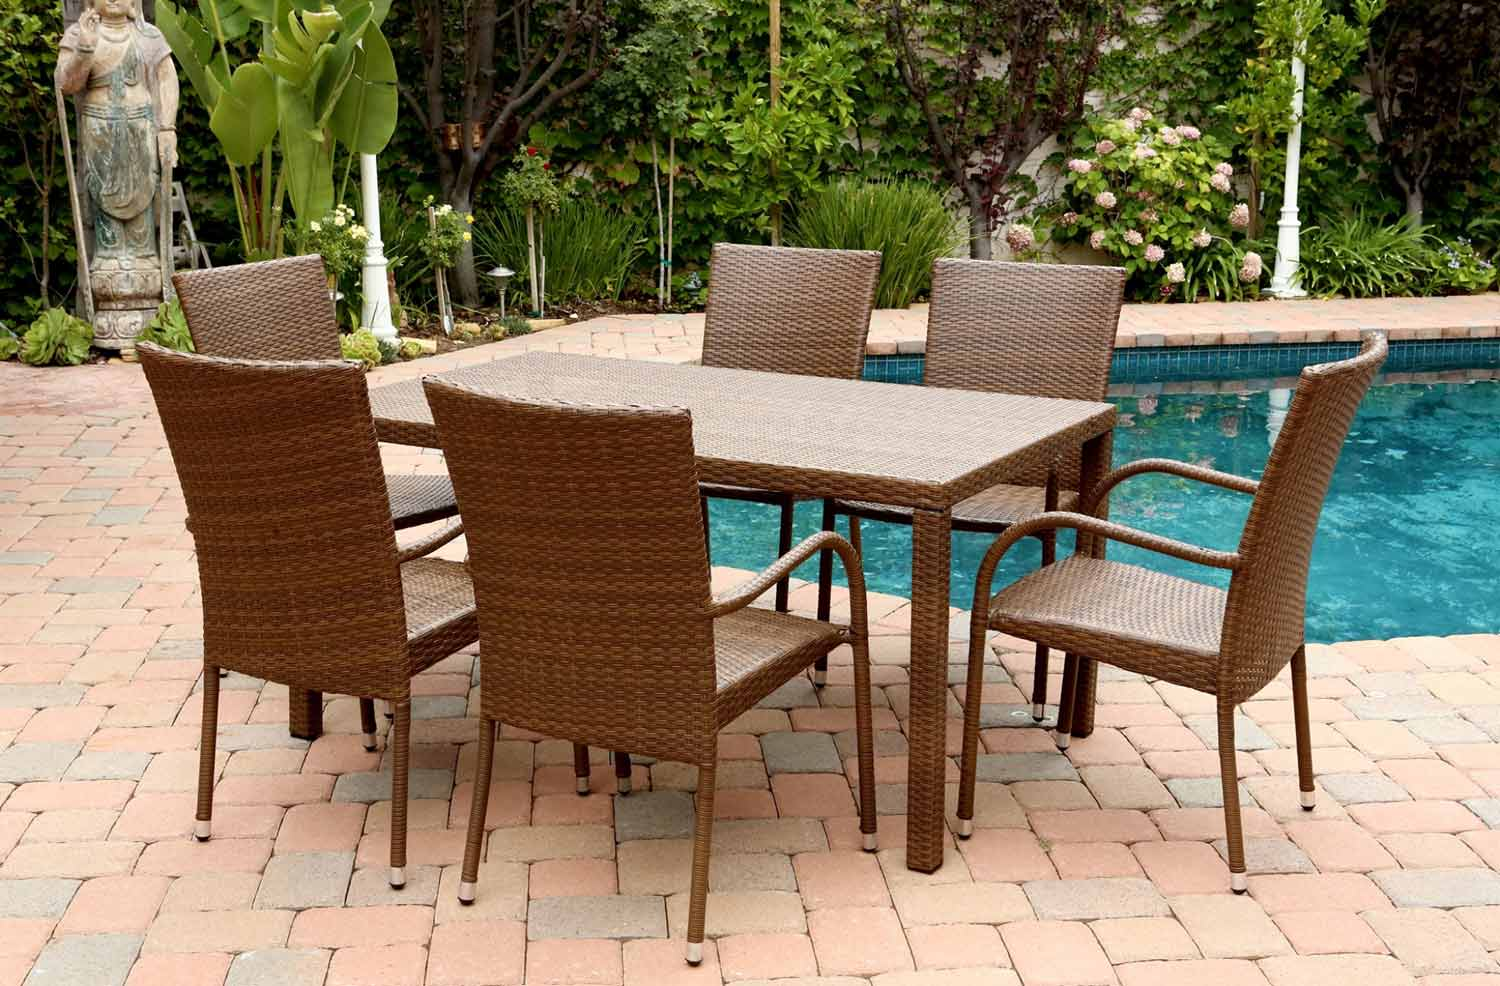 Abbyson Living Palermo Outdoor Wicker 7 Piece Dining Set - Brown